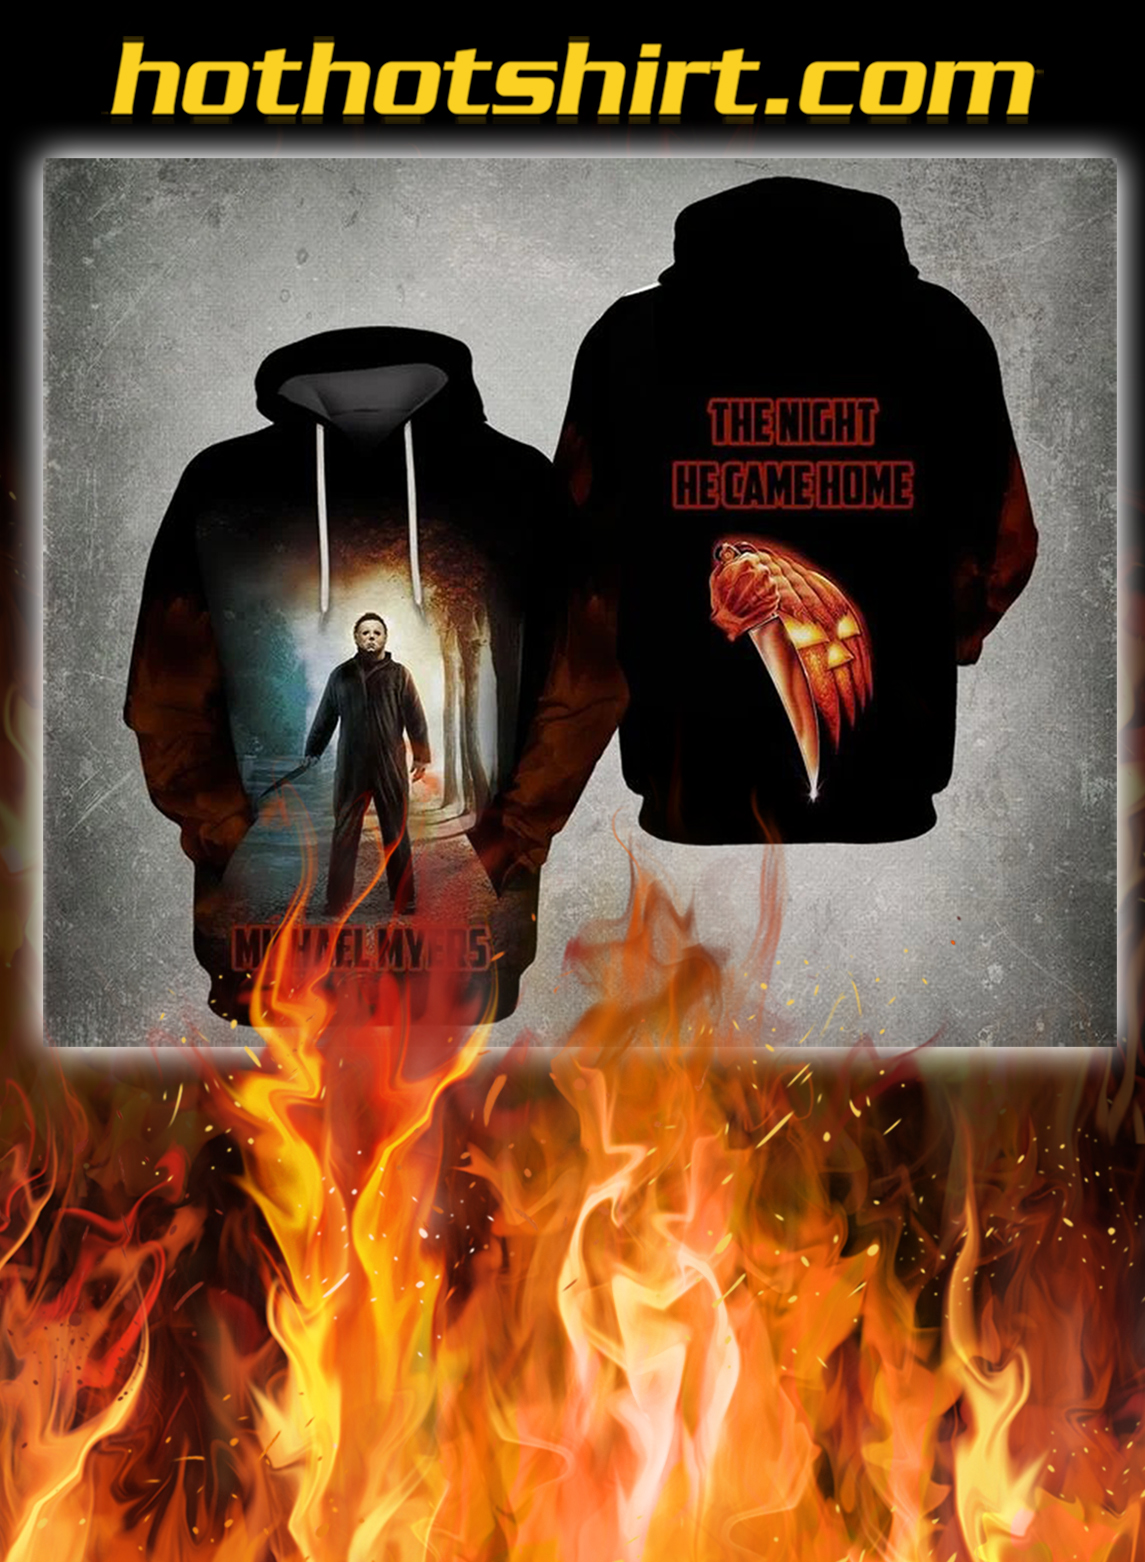 Michael myers the night he came home 3d all over print hoodie - M